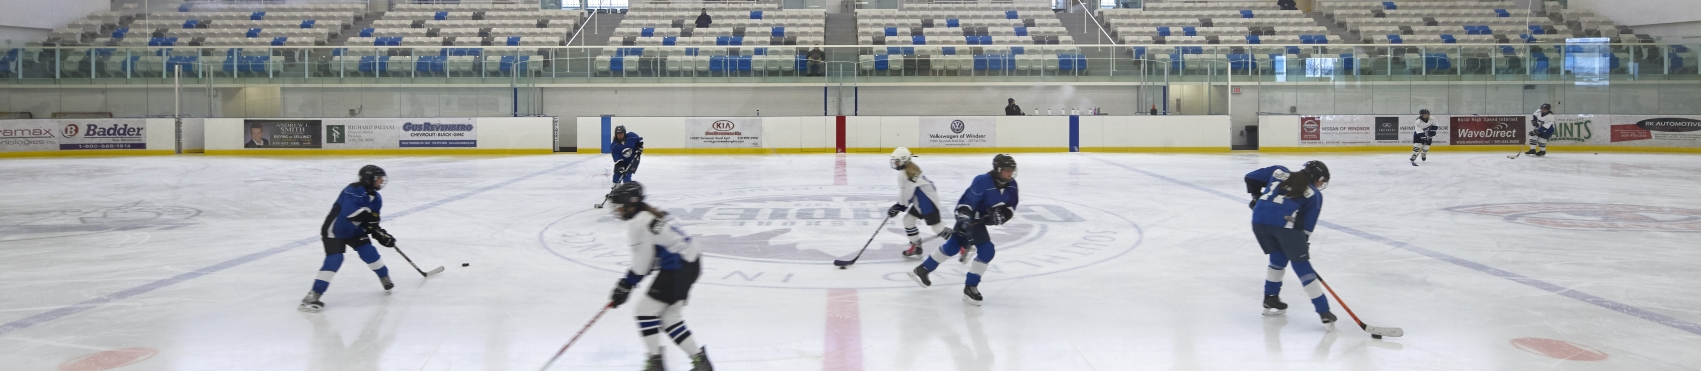 Kids playing hockey in the local arena